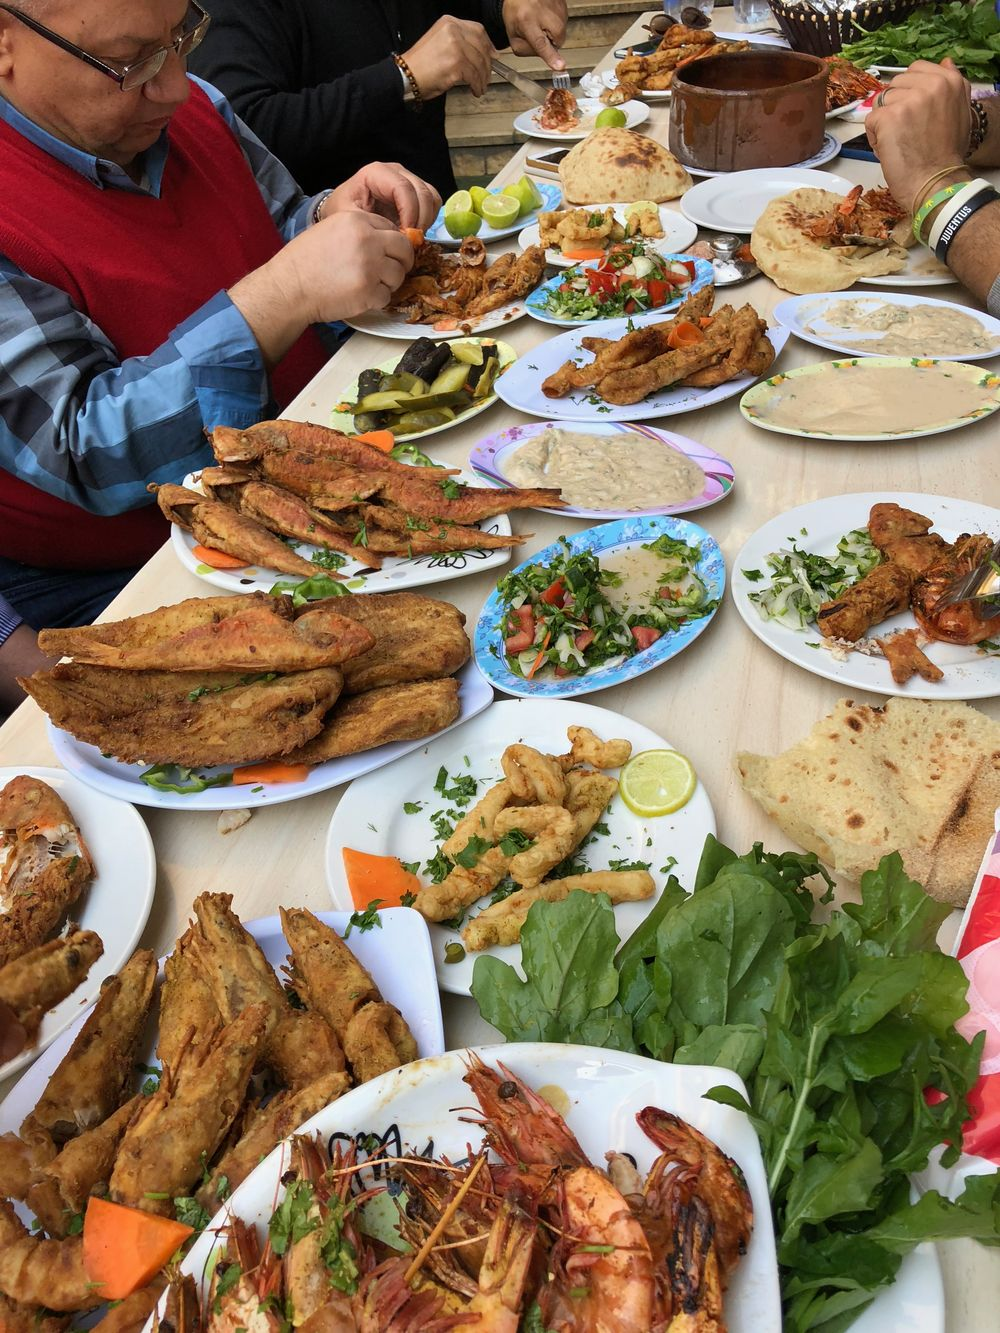 ghanem-fish-restaurant-egypt-152018-03-08-05-53-41